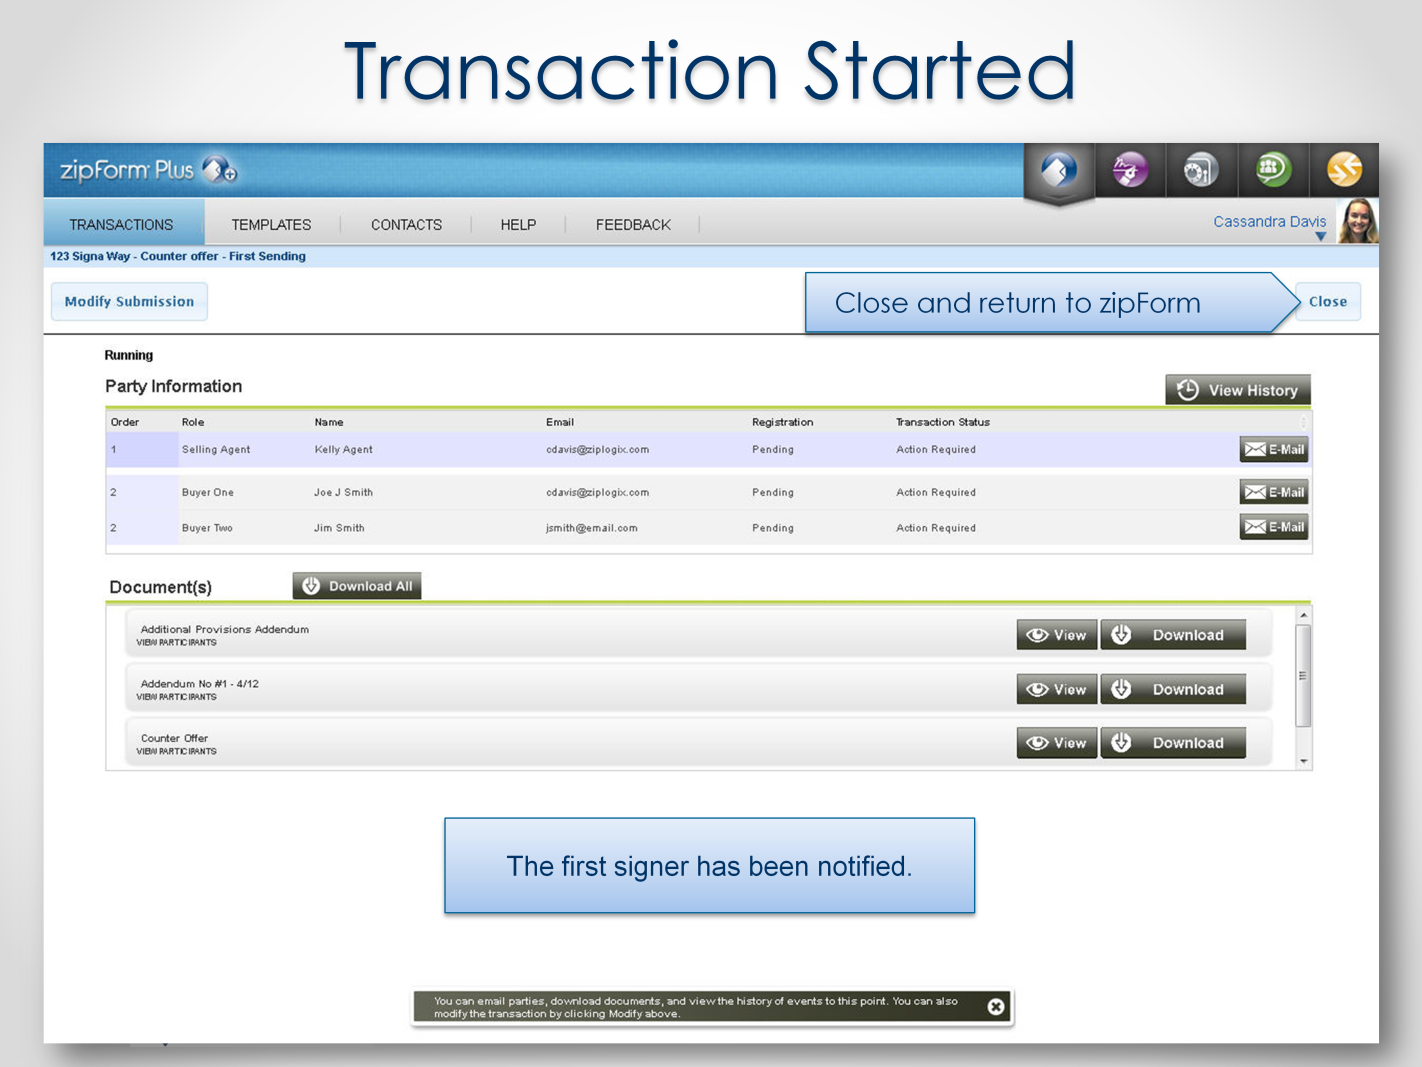 This same Status page can be used during the signing process to check the status of signatures.